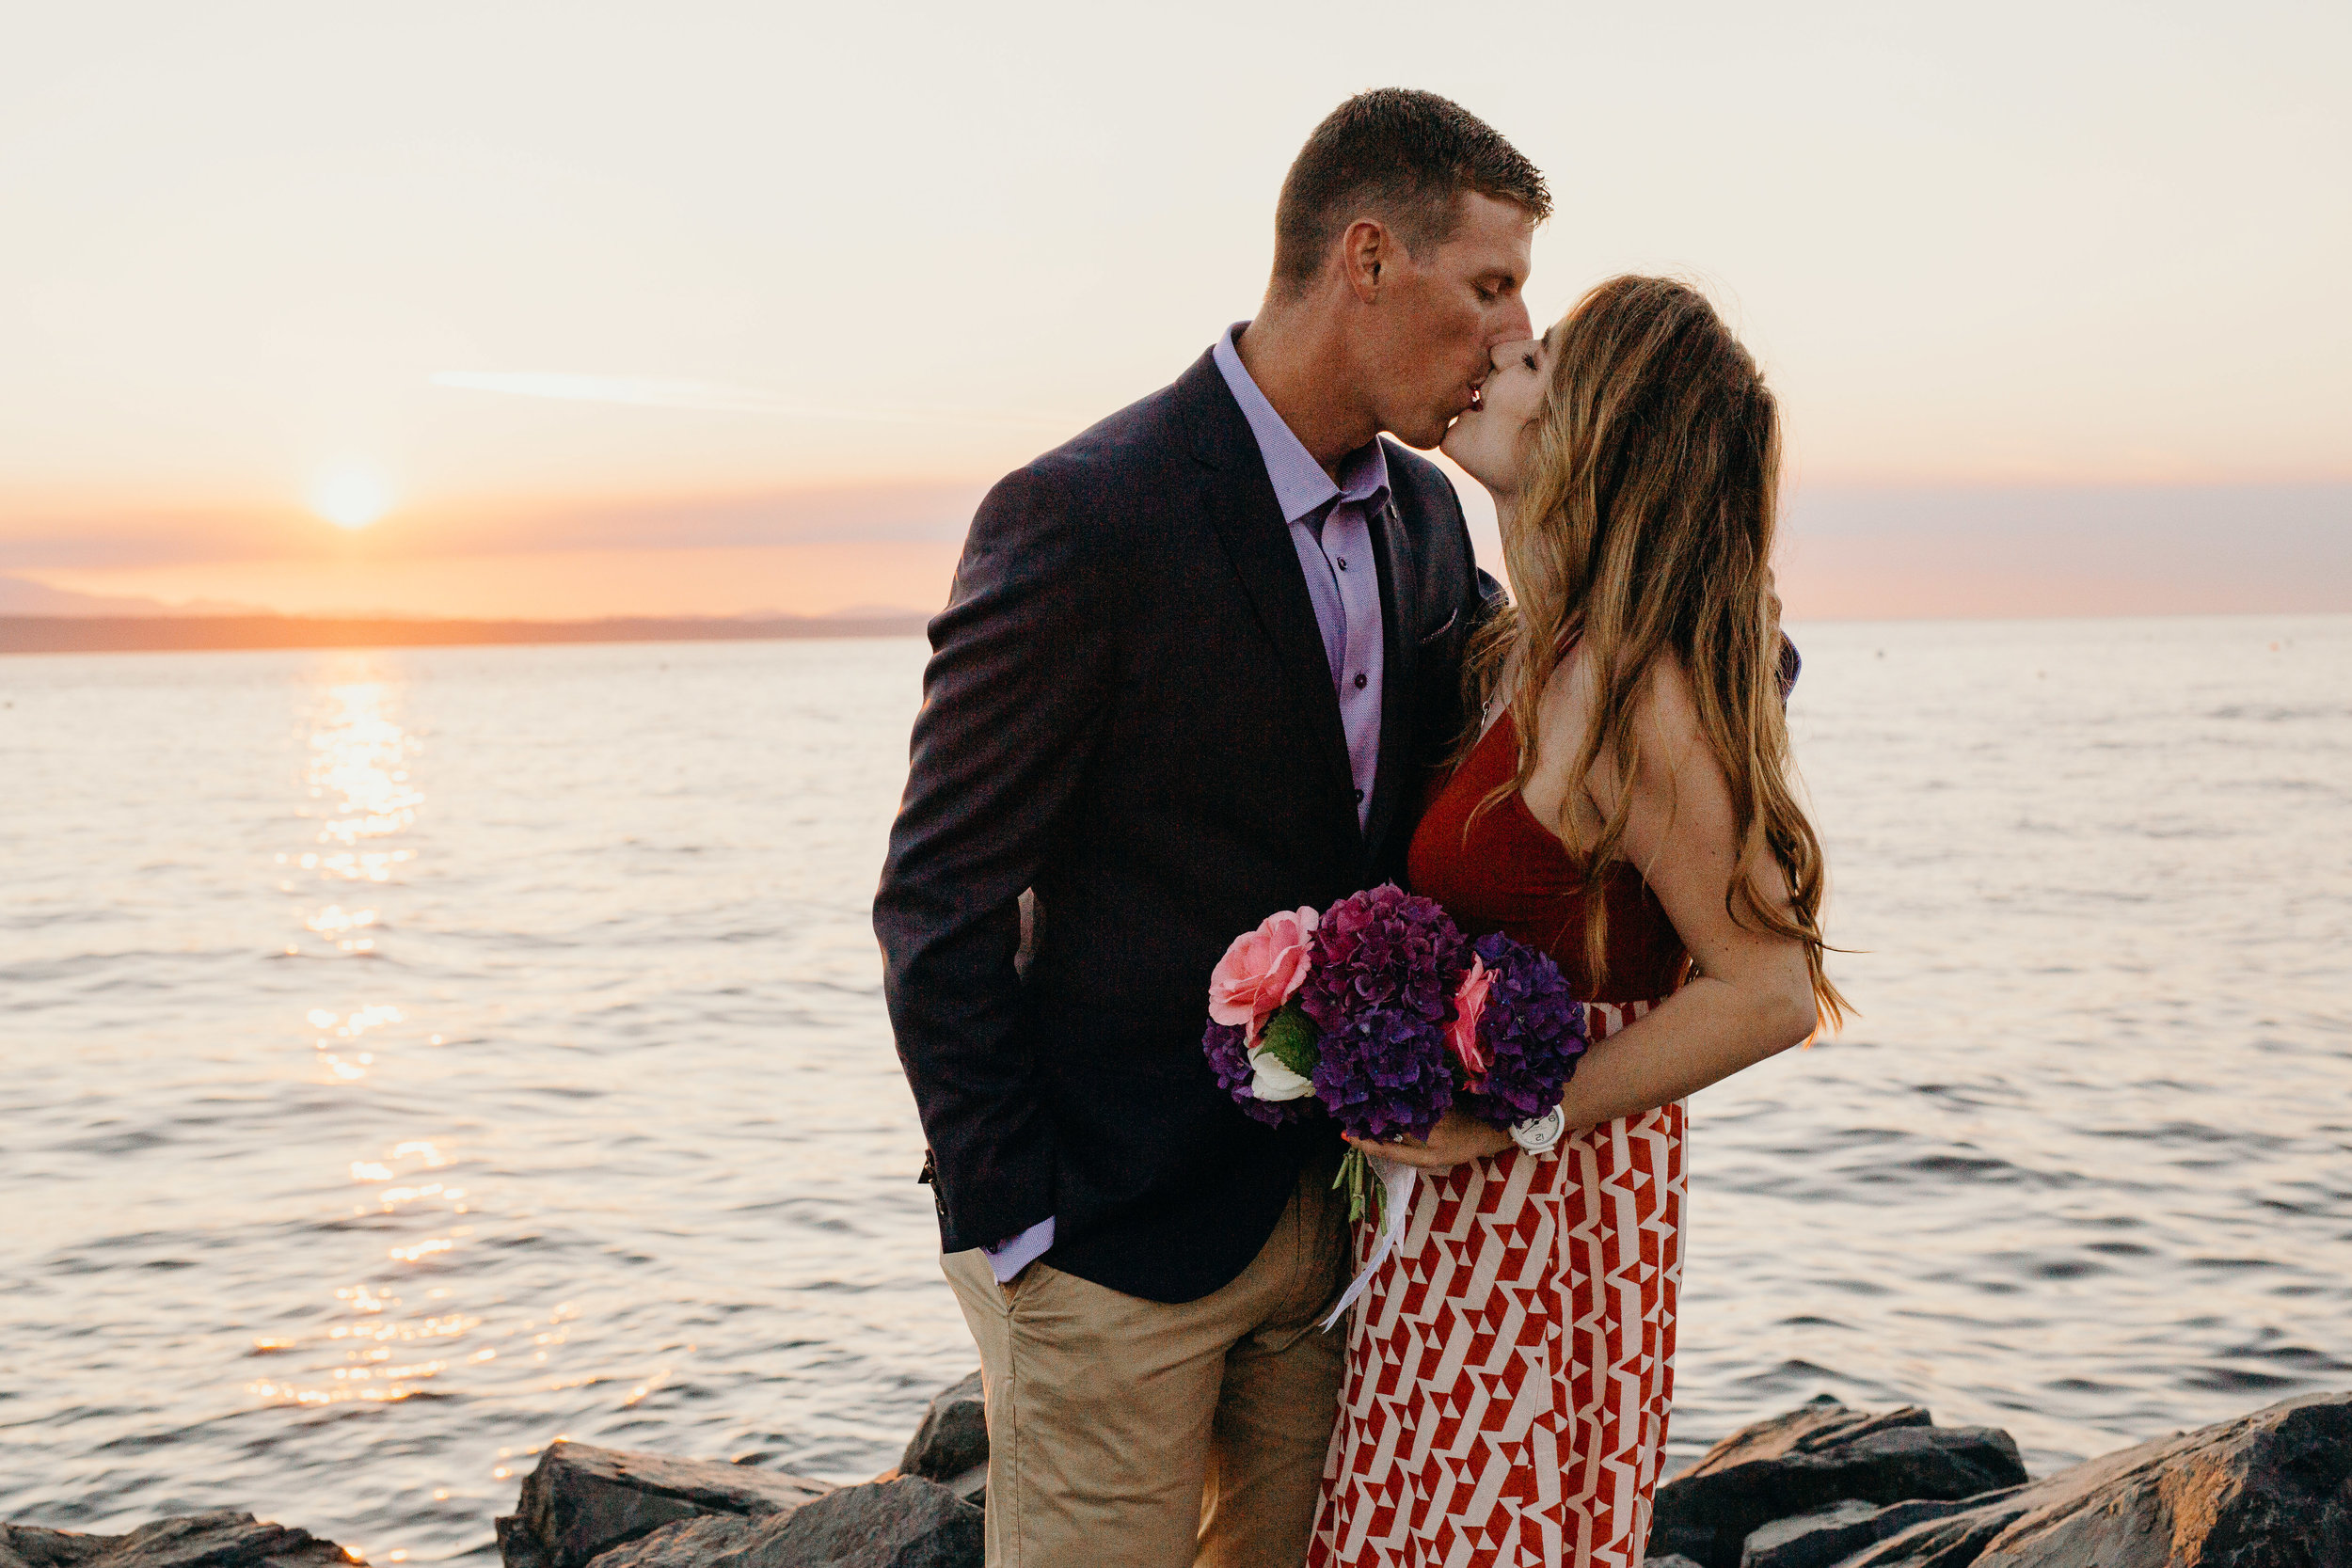 Riley & Sarah - Engagement, Aug. 10, 2018